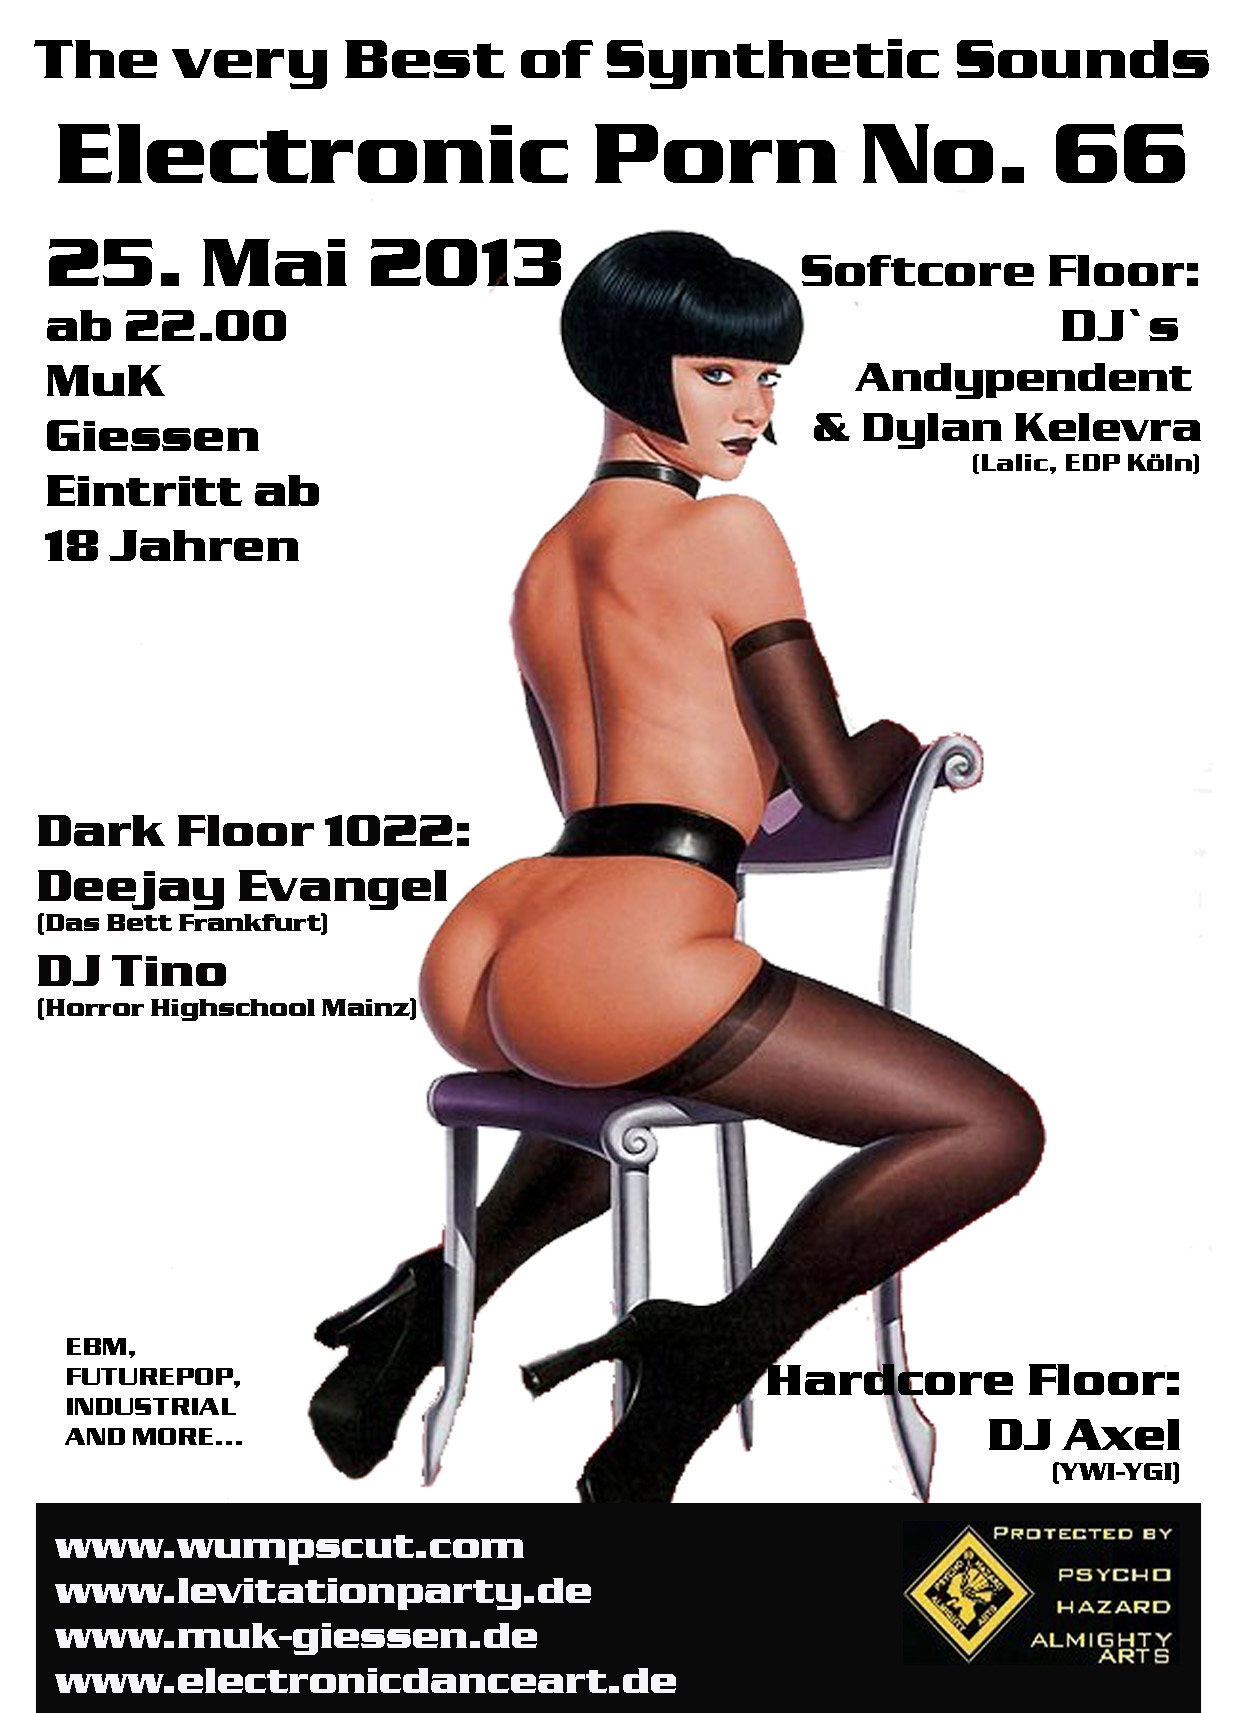 Party: Electronic Porn Party No. 66